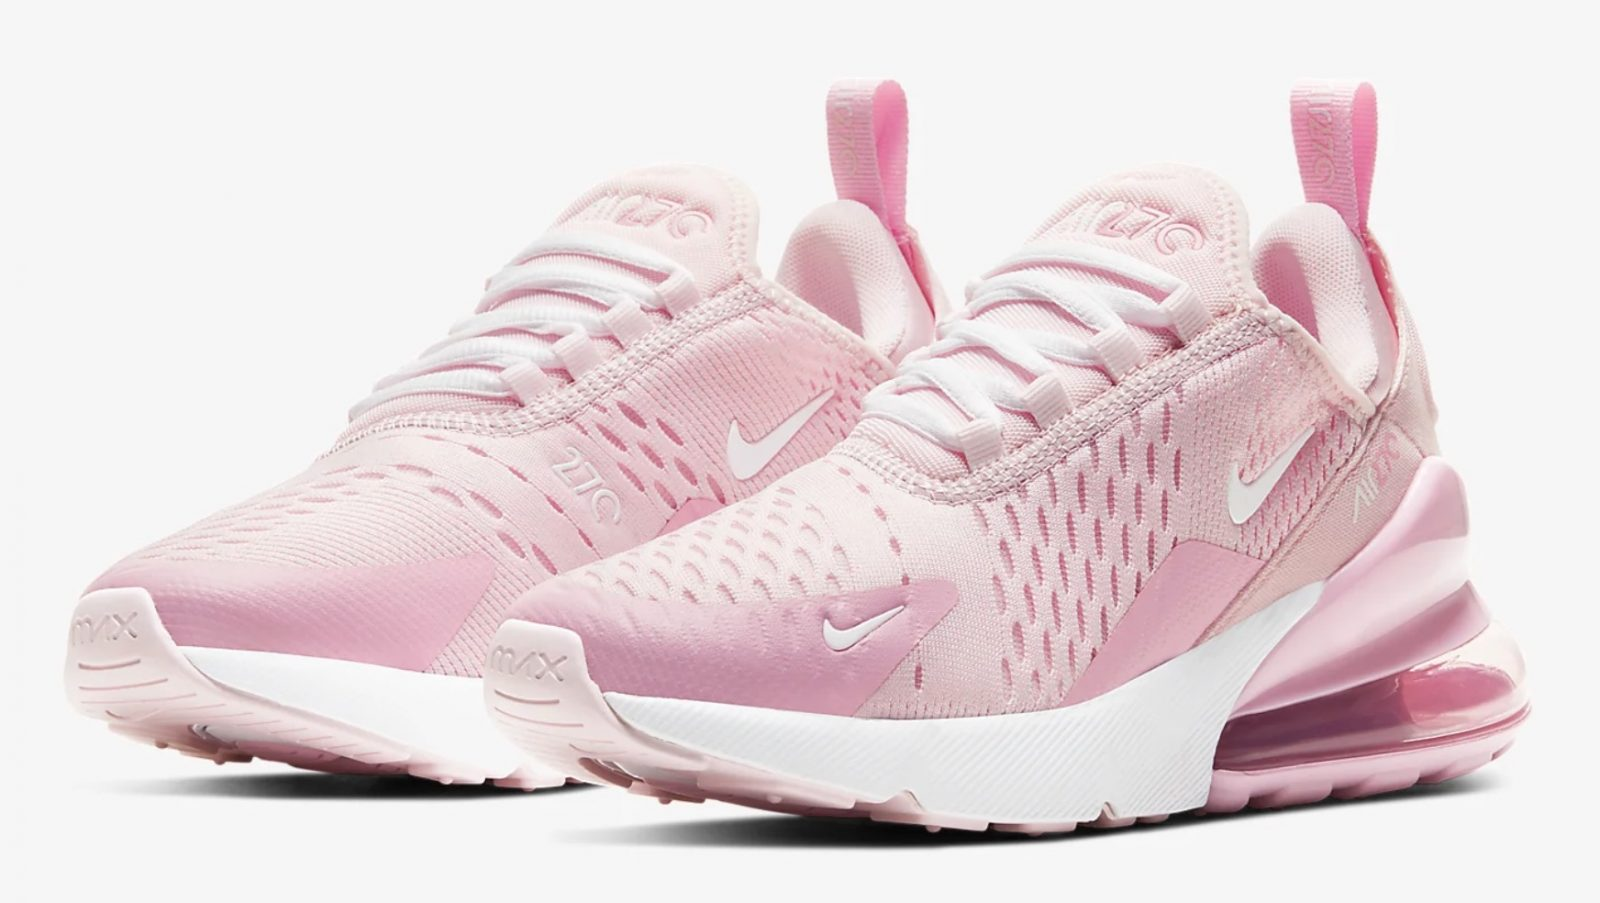 The Latest Nike Air Max 270 'Pink Foam' Is As Pretty As It Gets